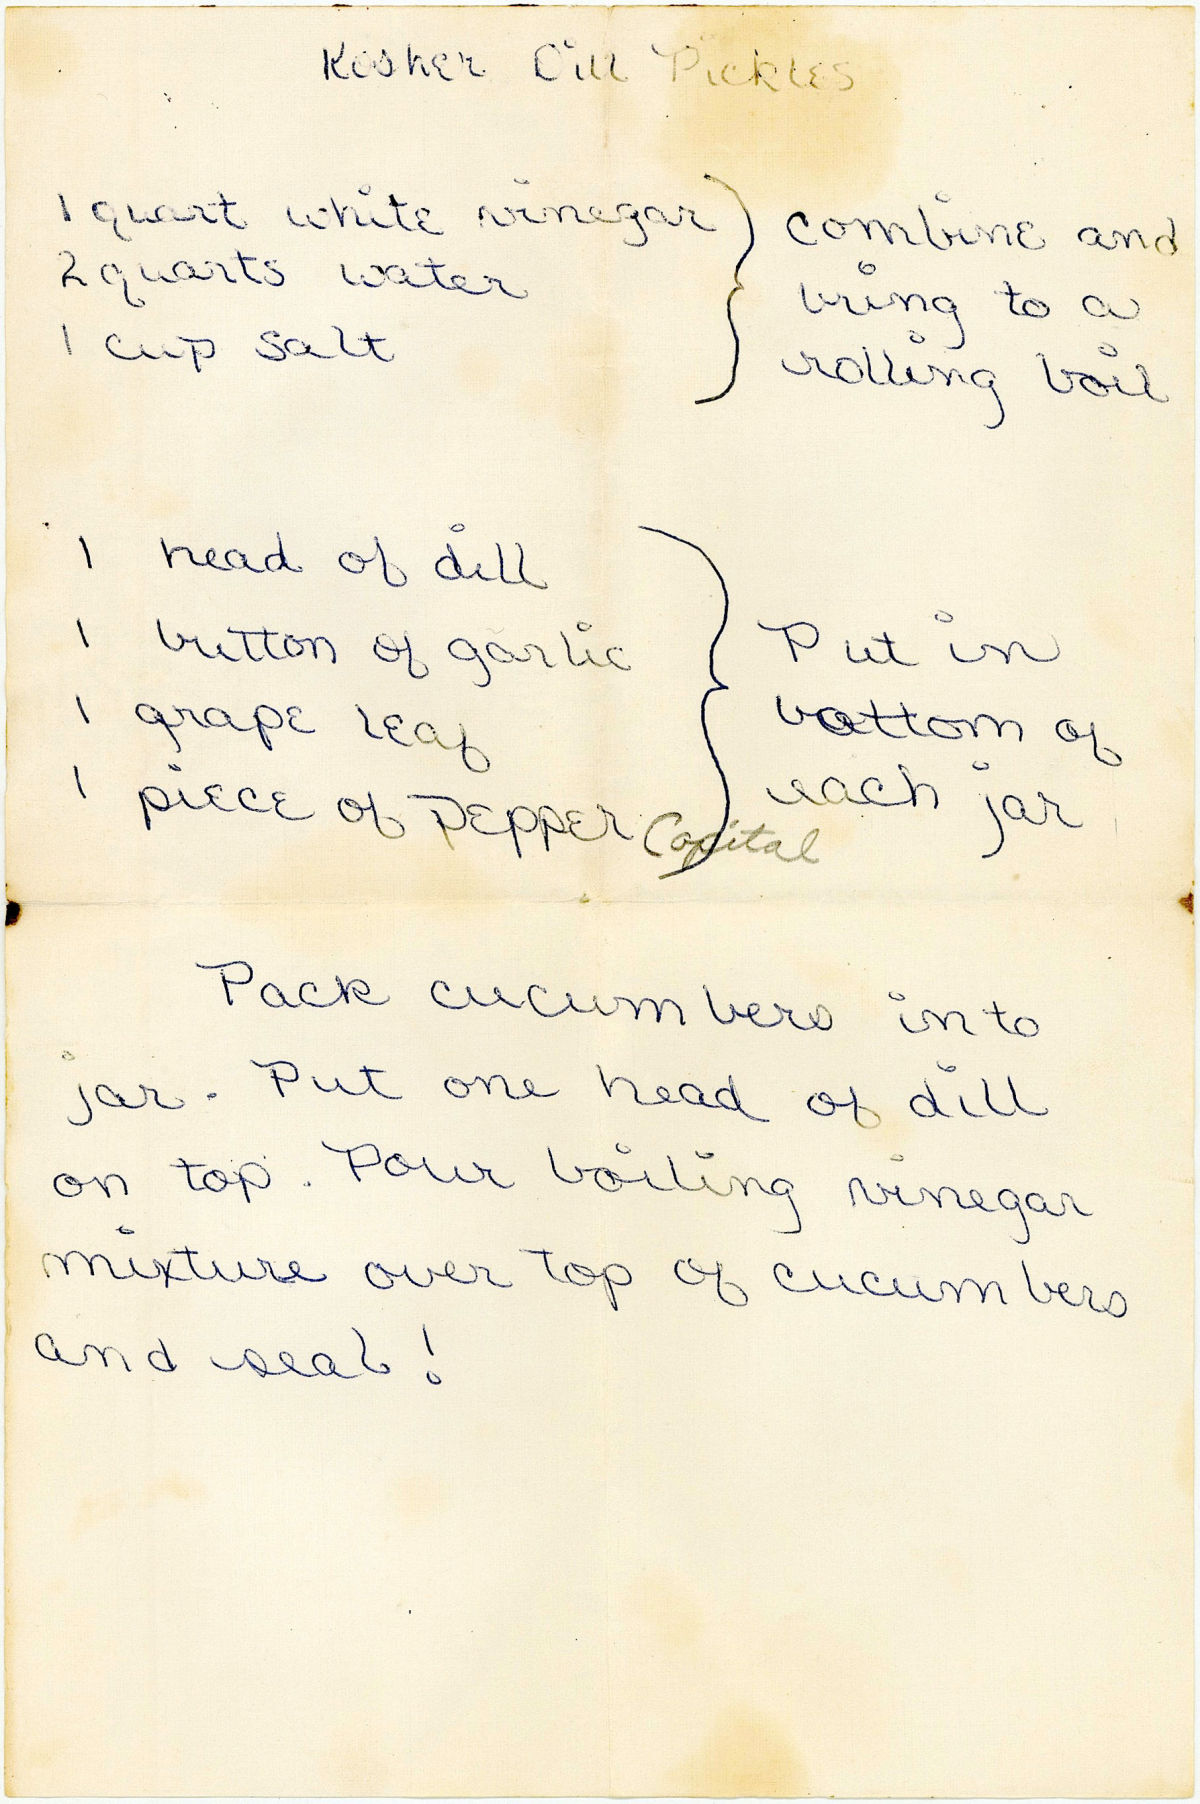 Vintage kosher dill recipe